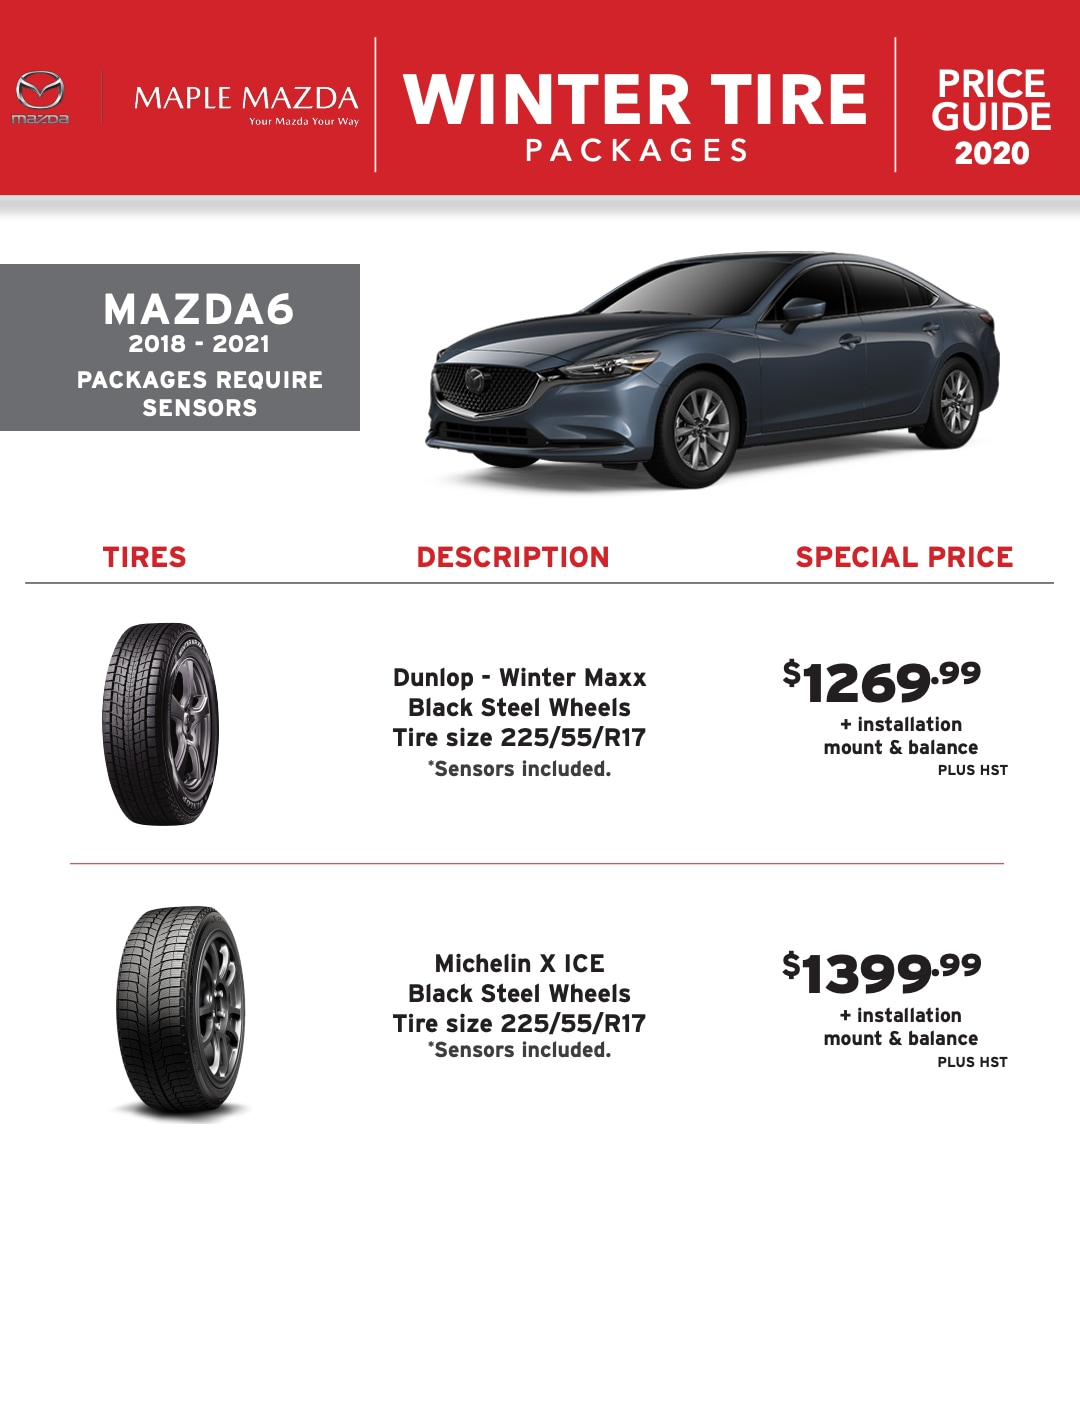 Winter Tire Packages in Maple, Ontario - MAZDA6